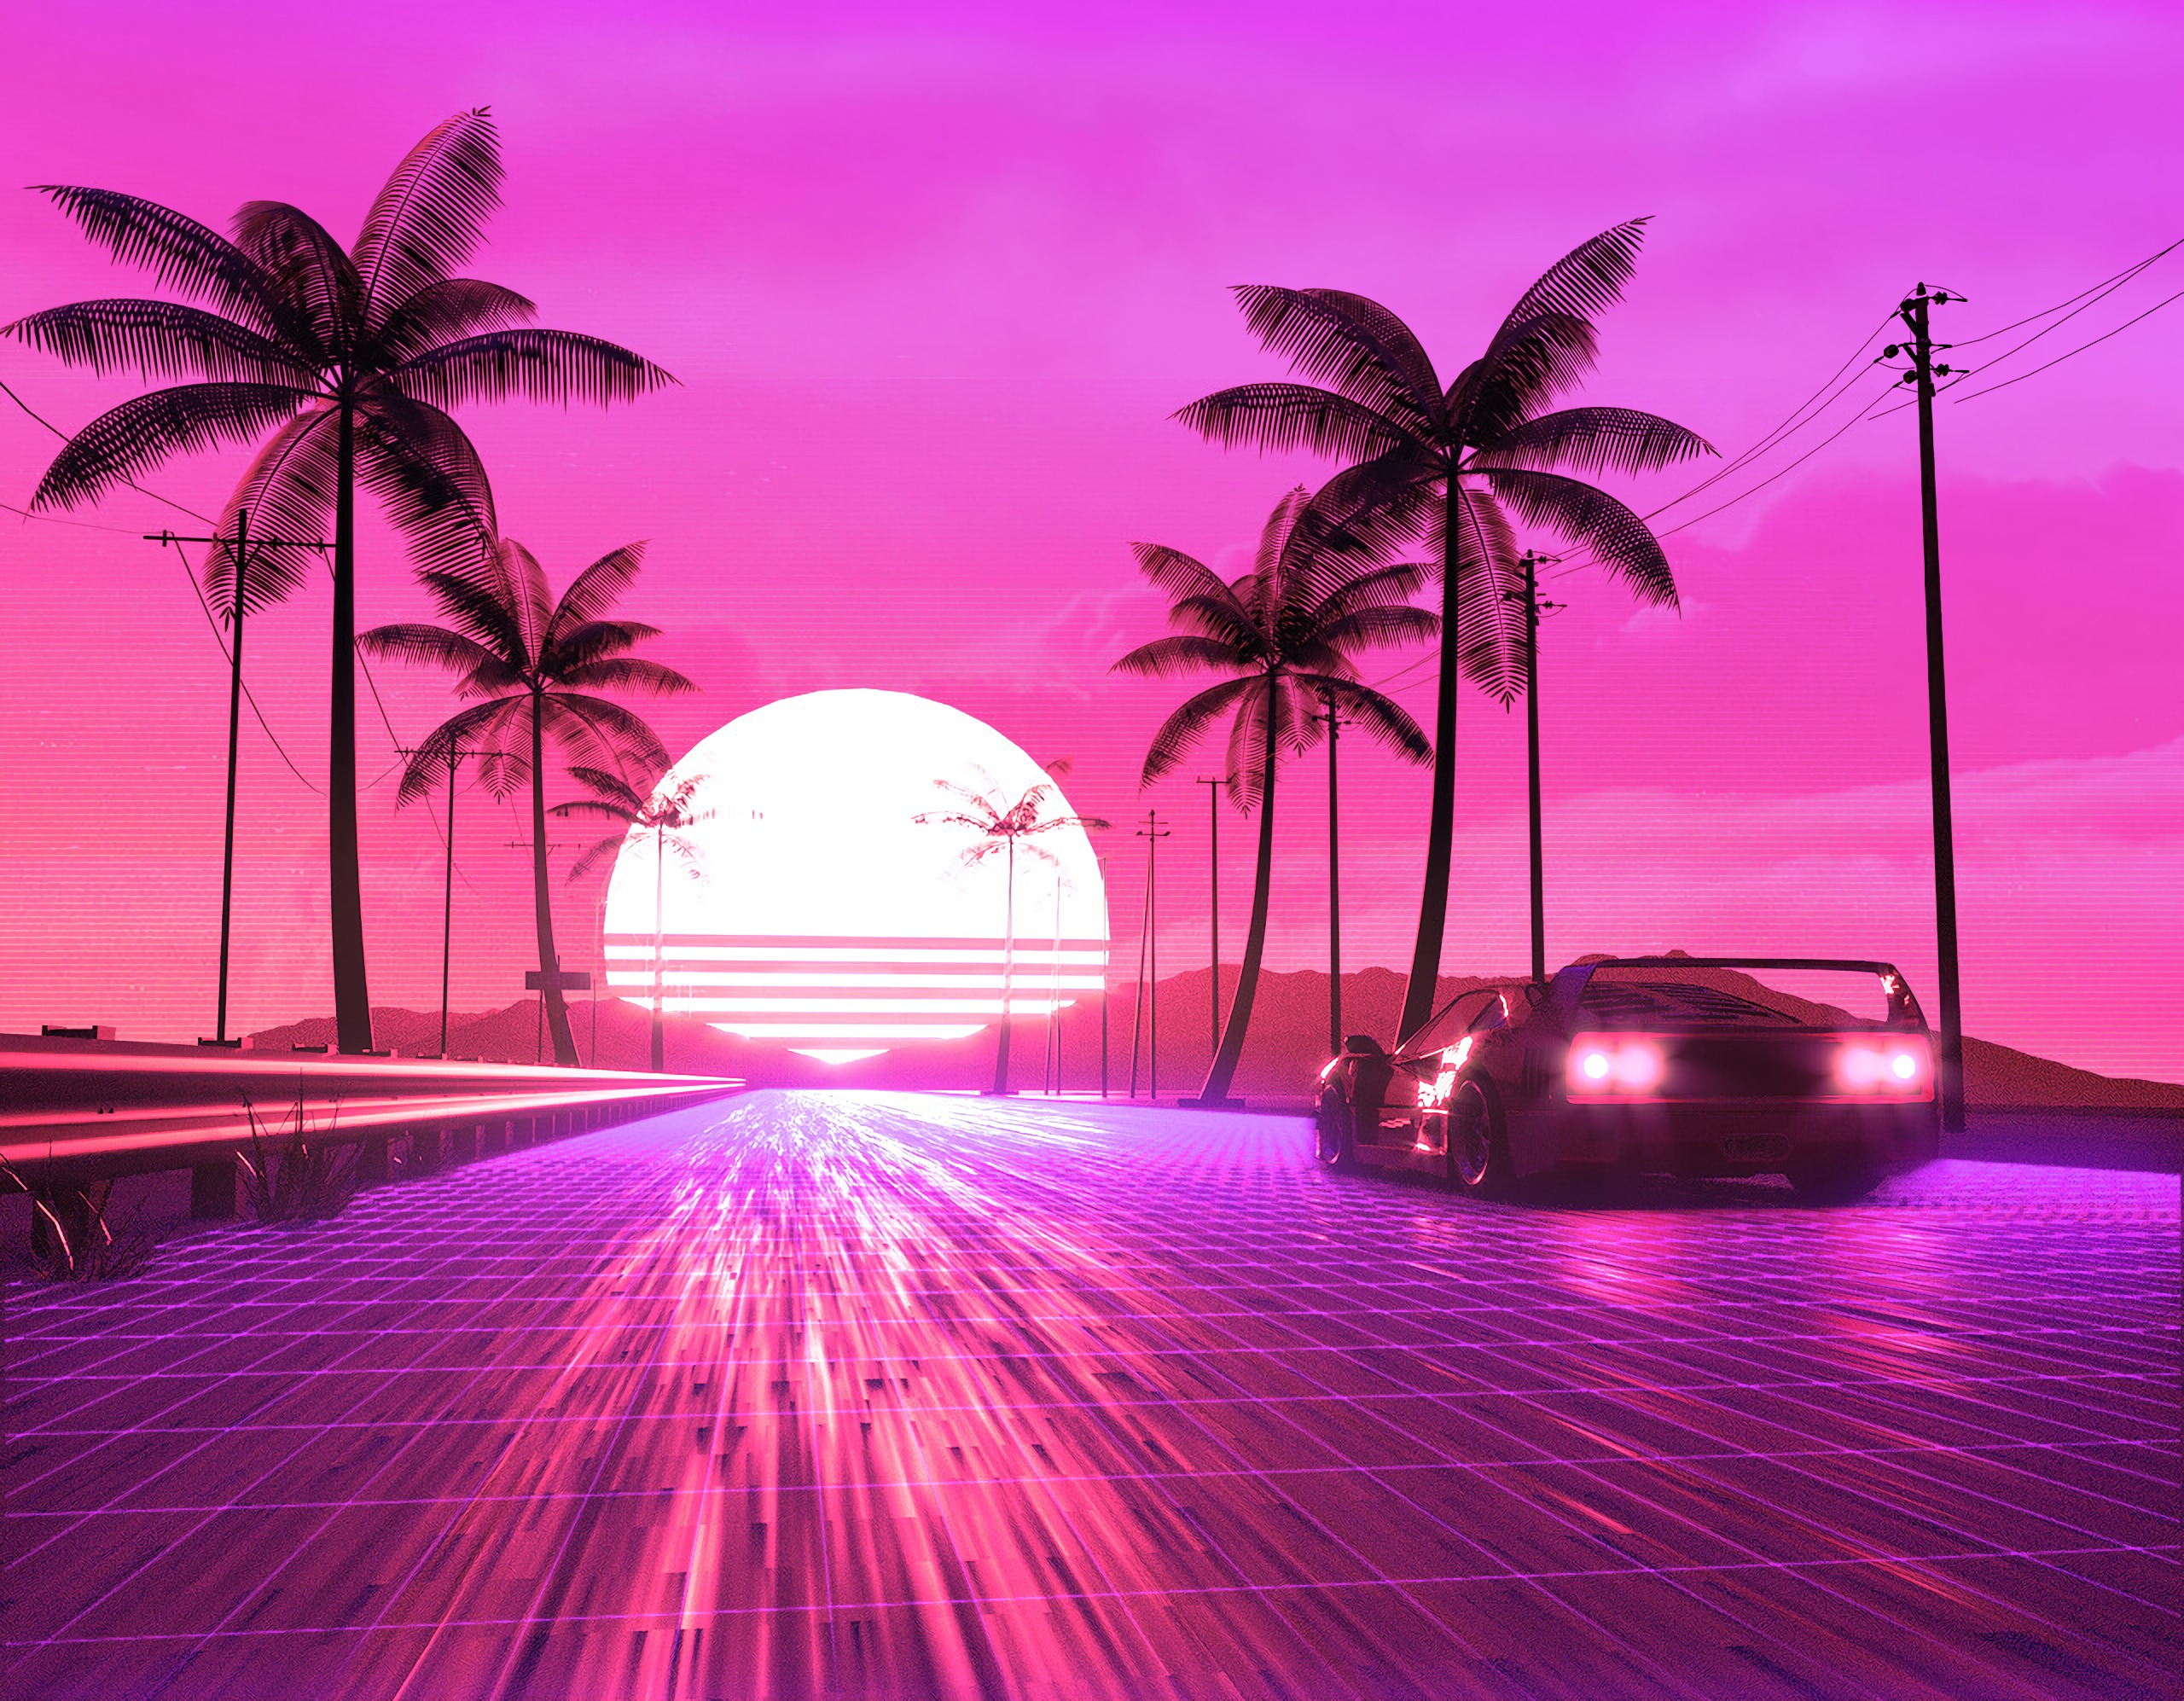 Retro 80s Ride Hd Artist 4k Wallpapers Images